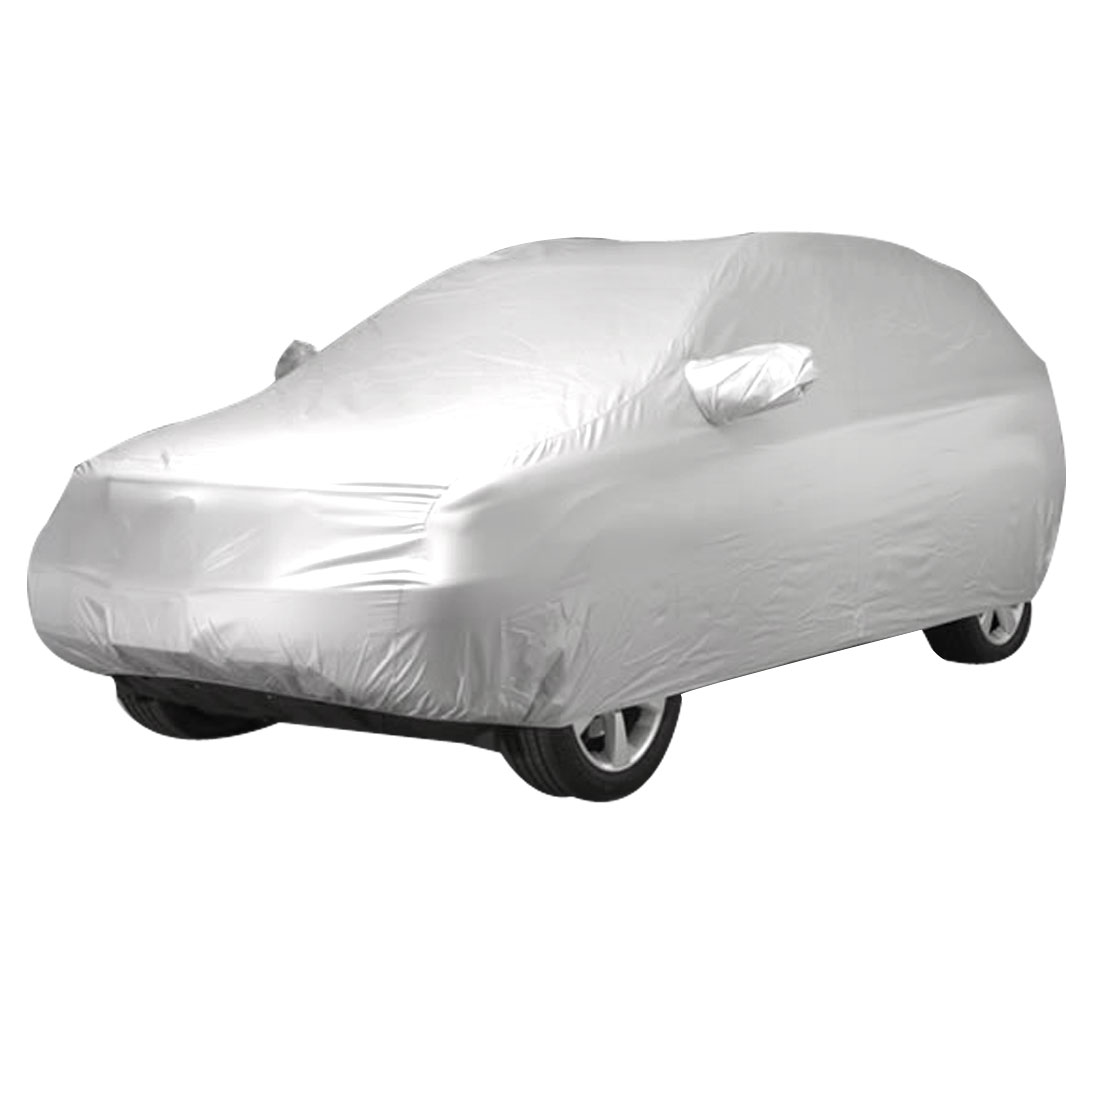 Car Outdoor Waterproof Sun UV Anti Dust Rain All Weather Protective Cover Size XL 5200*2000*1950 (L*W*H)